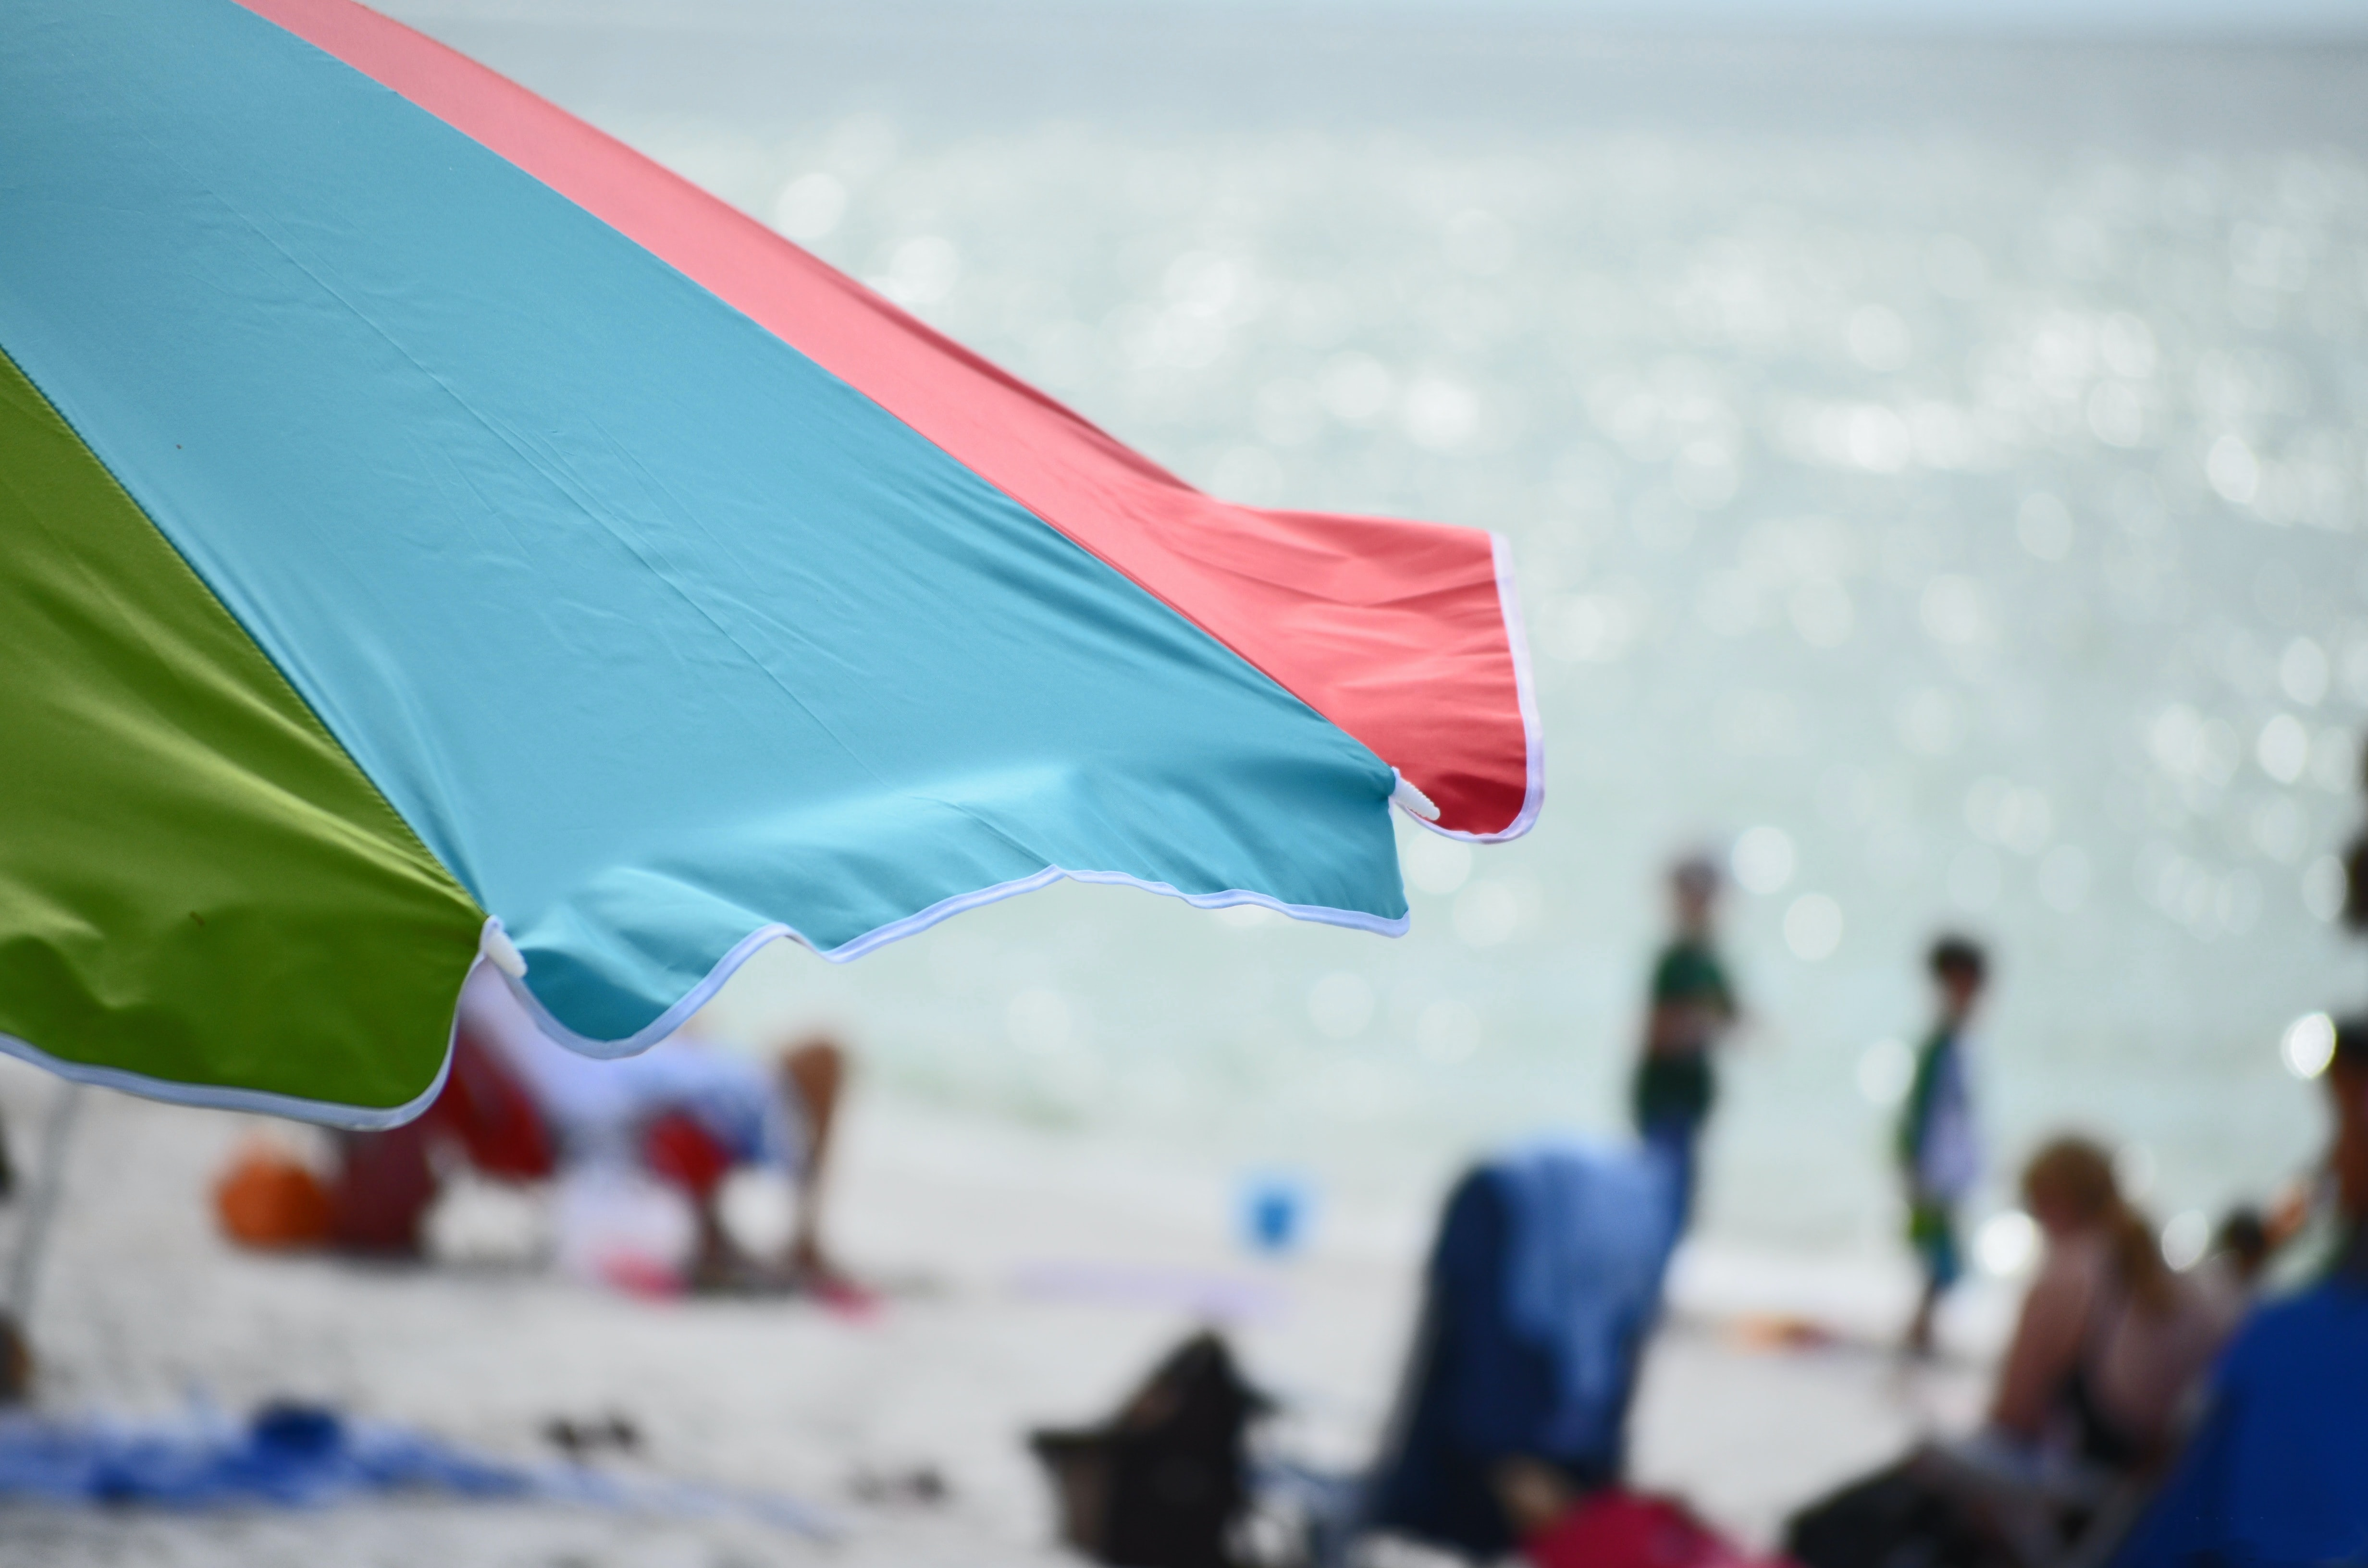 blue, red, and green beach umbrella in closeup shot